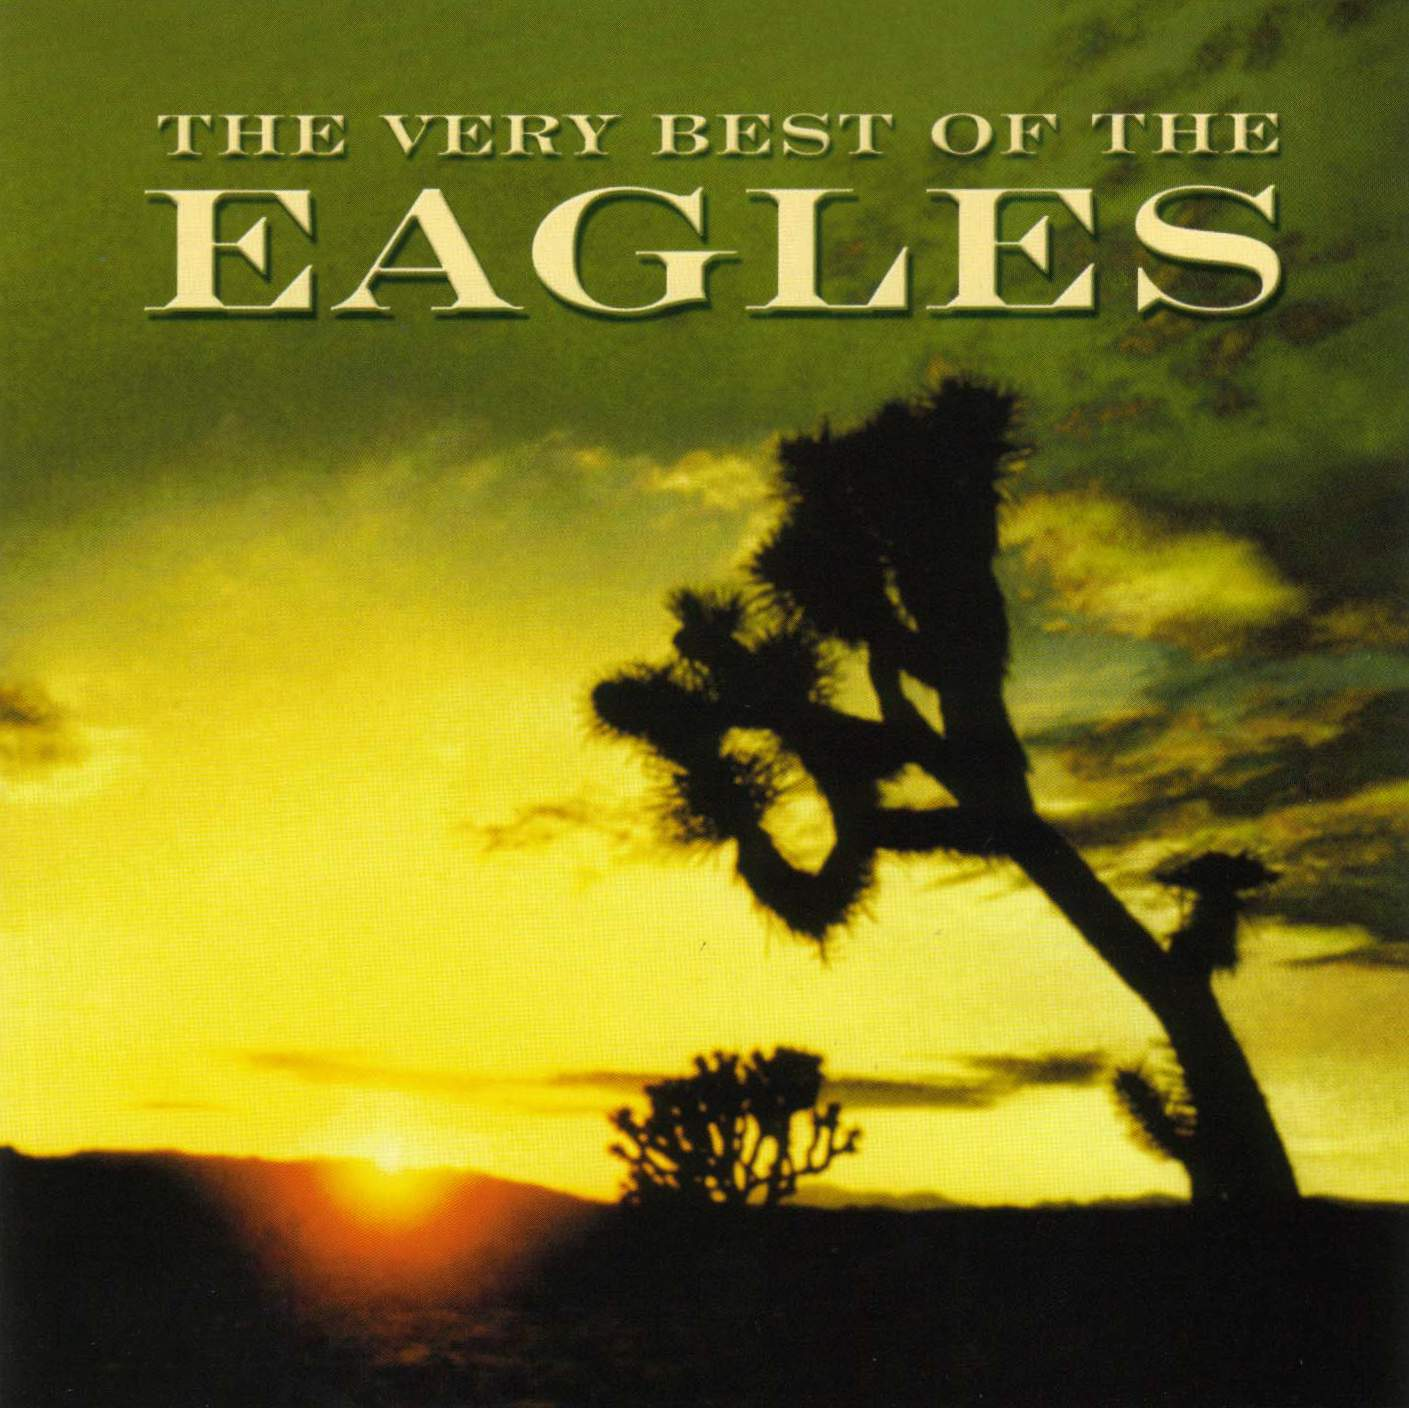 Eagles - Take It To The Limit